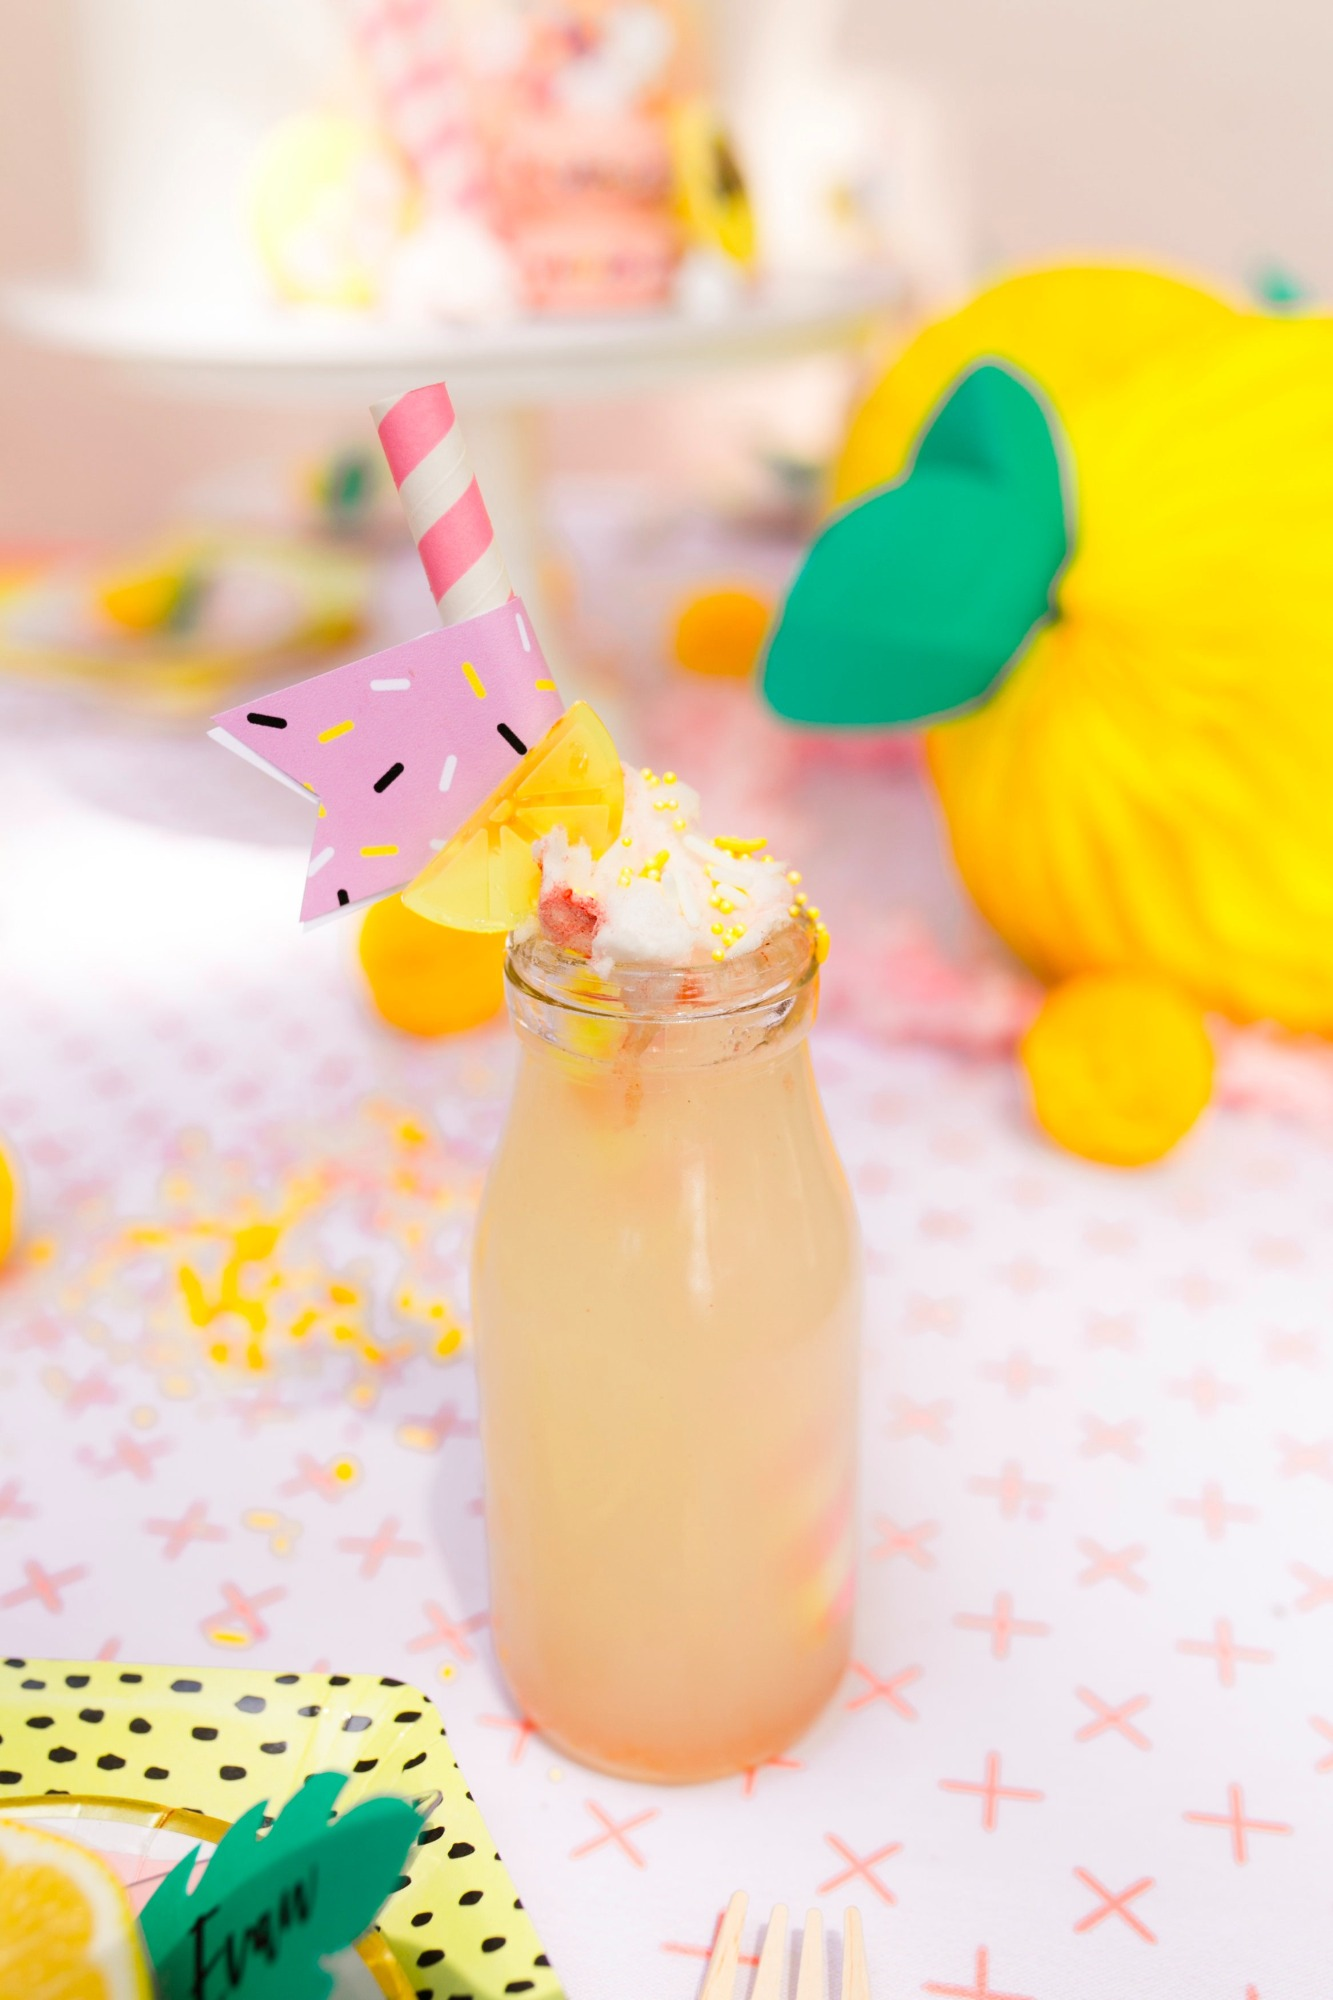 Lemonade in glass bottles from Lemonade Stand Birthday Party by Forrest and J. | Black Twine